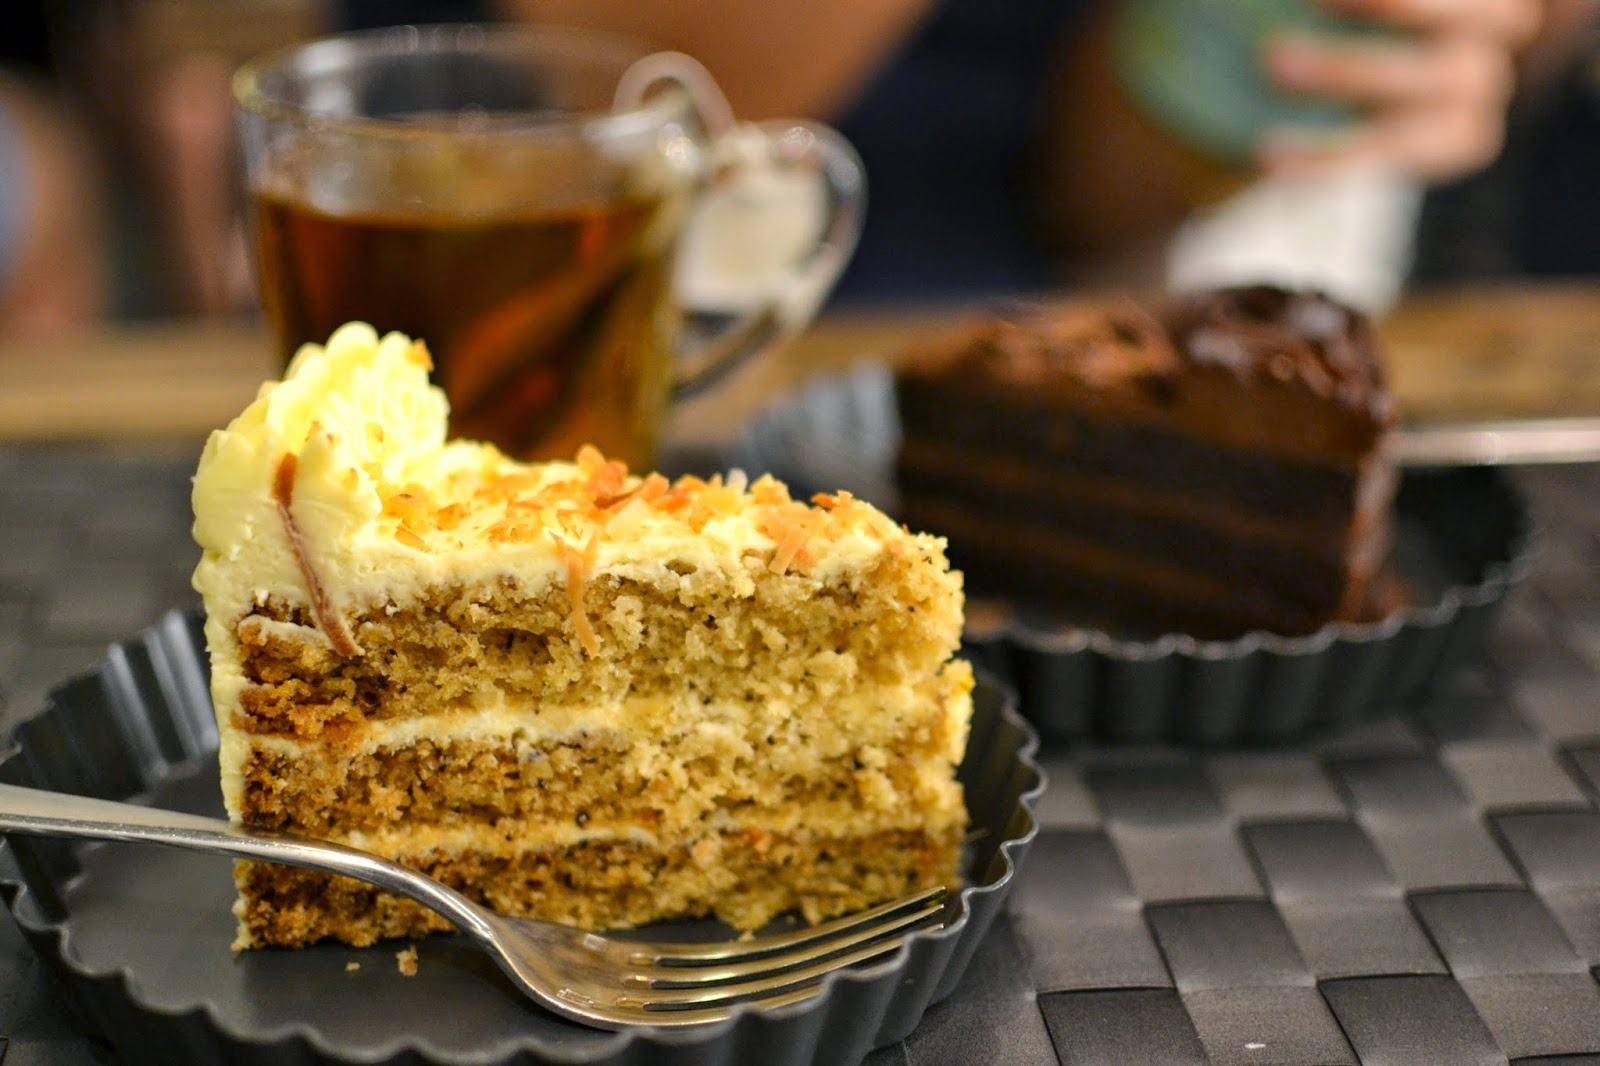 Top Bakers Cafes For Best Cakes In Singapore Aspirantsg Food